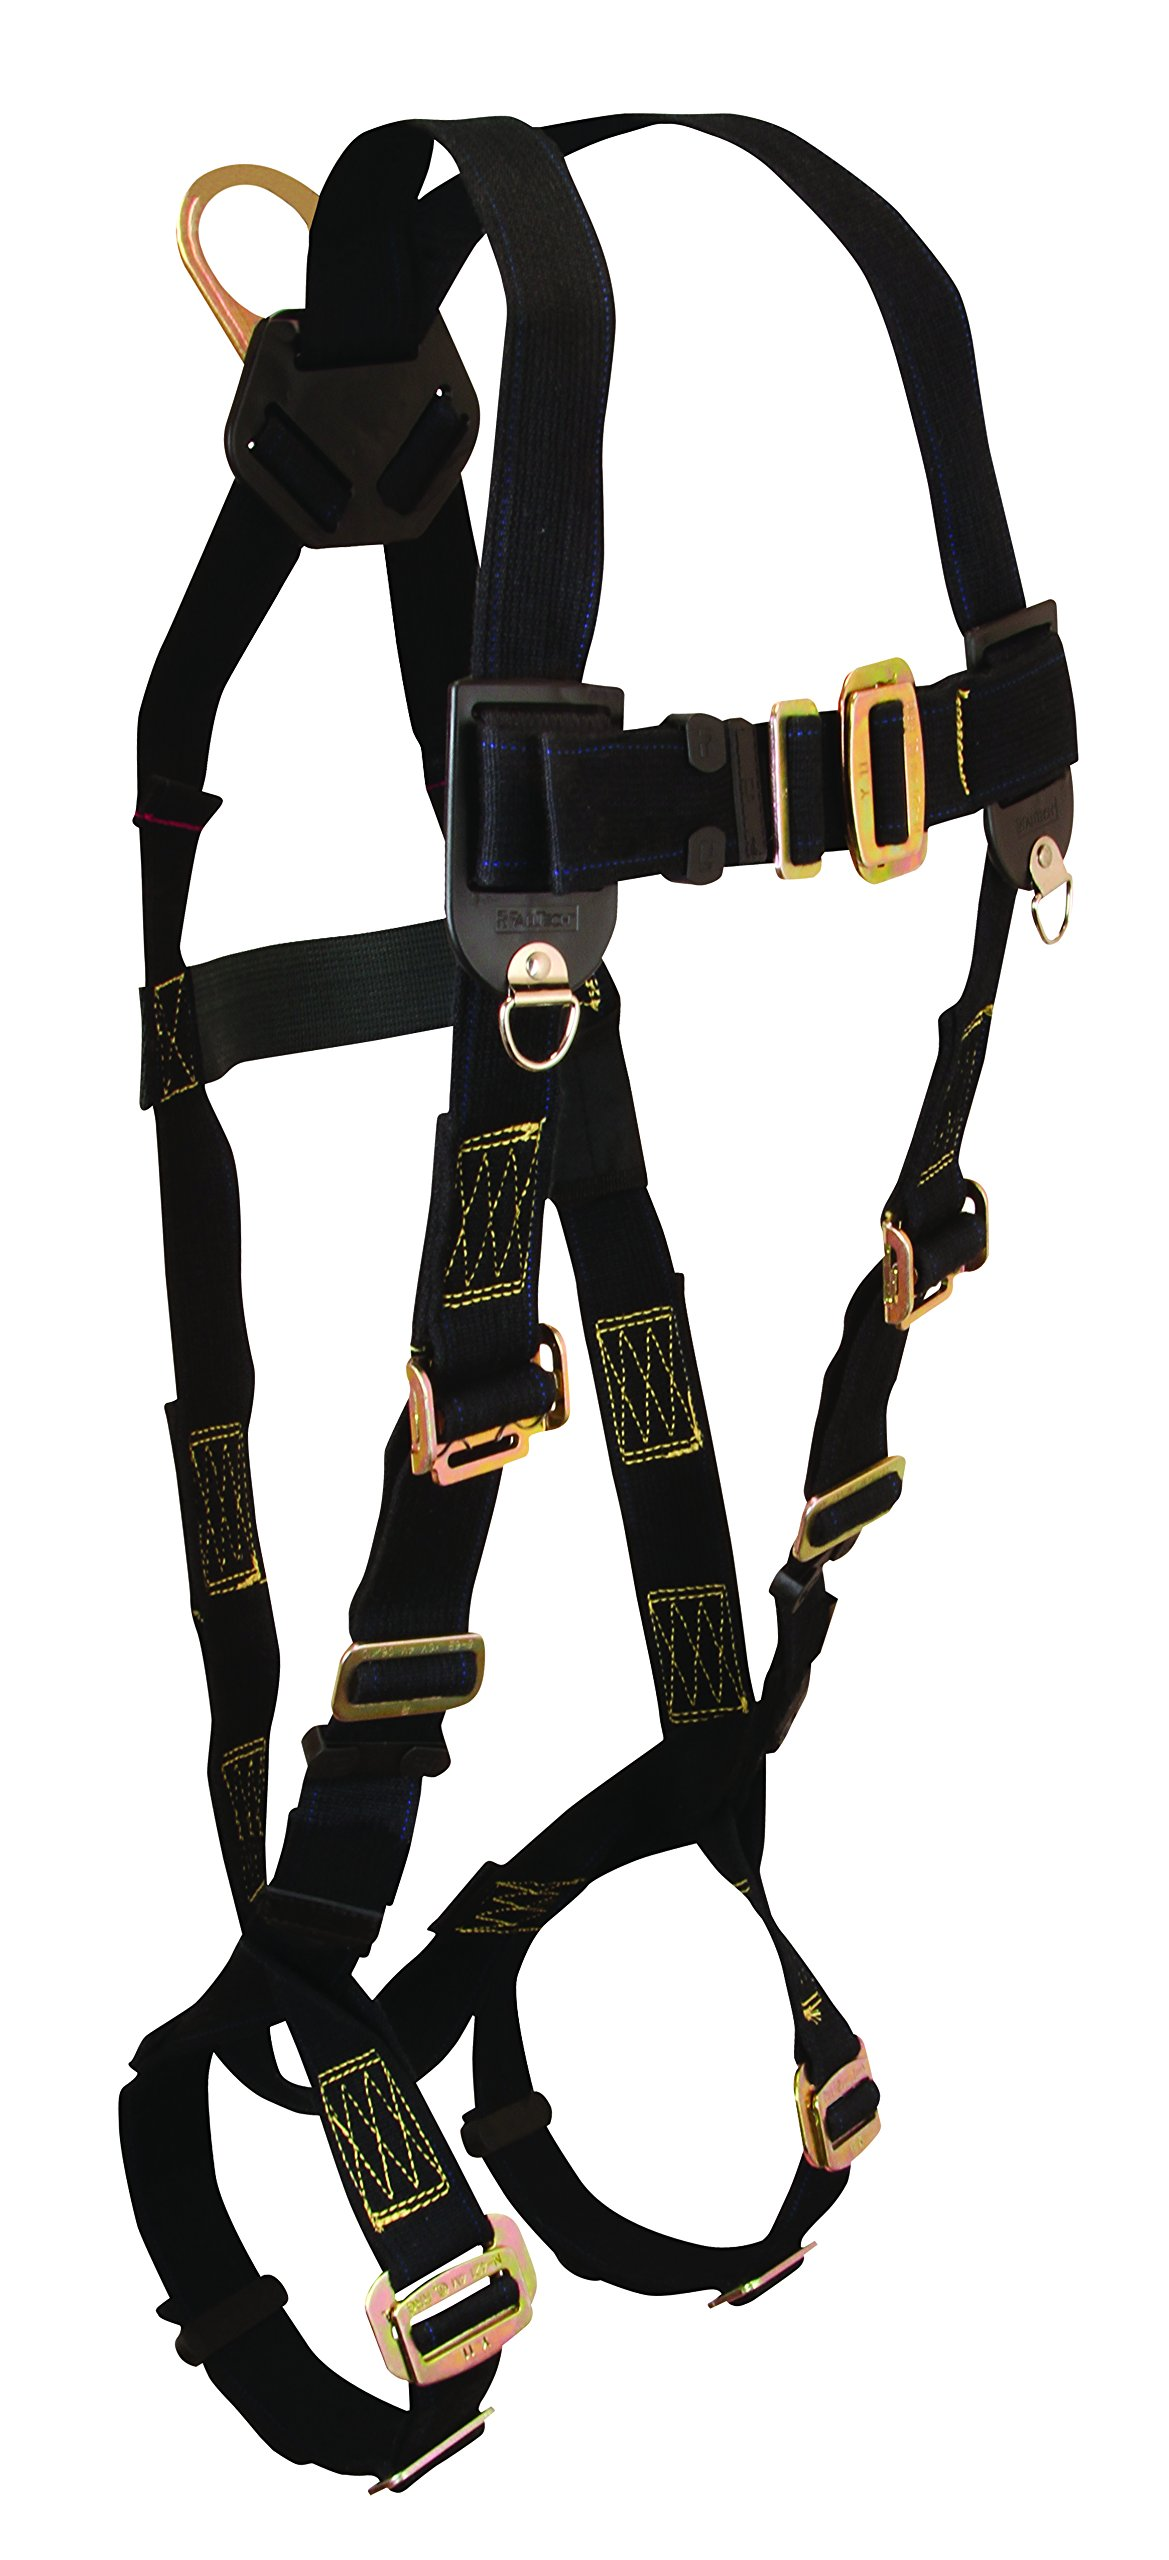 FallTech 7037 WeldTech Full Body Harness with 1 D-Ring and Mating Buckle Leg Straps, Universal Fit